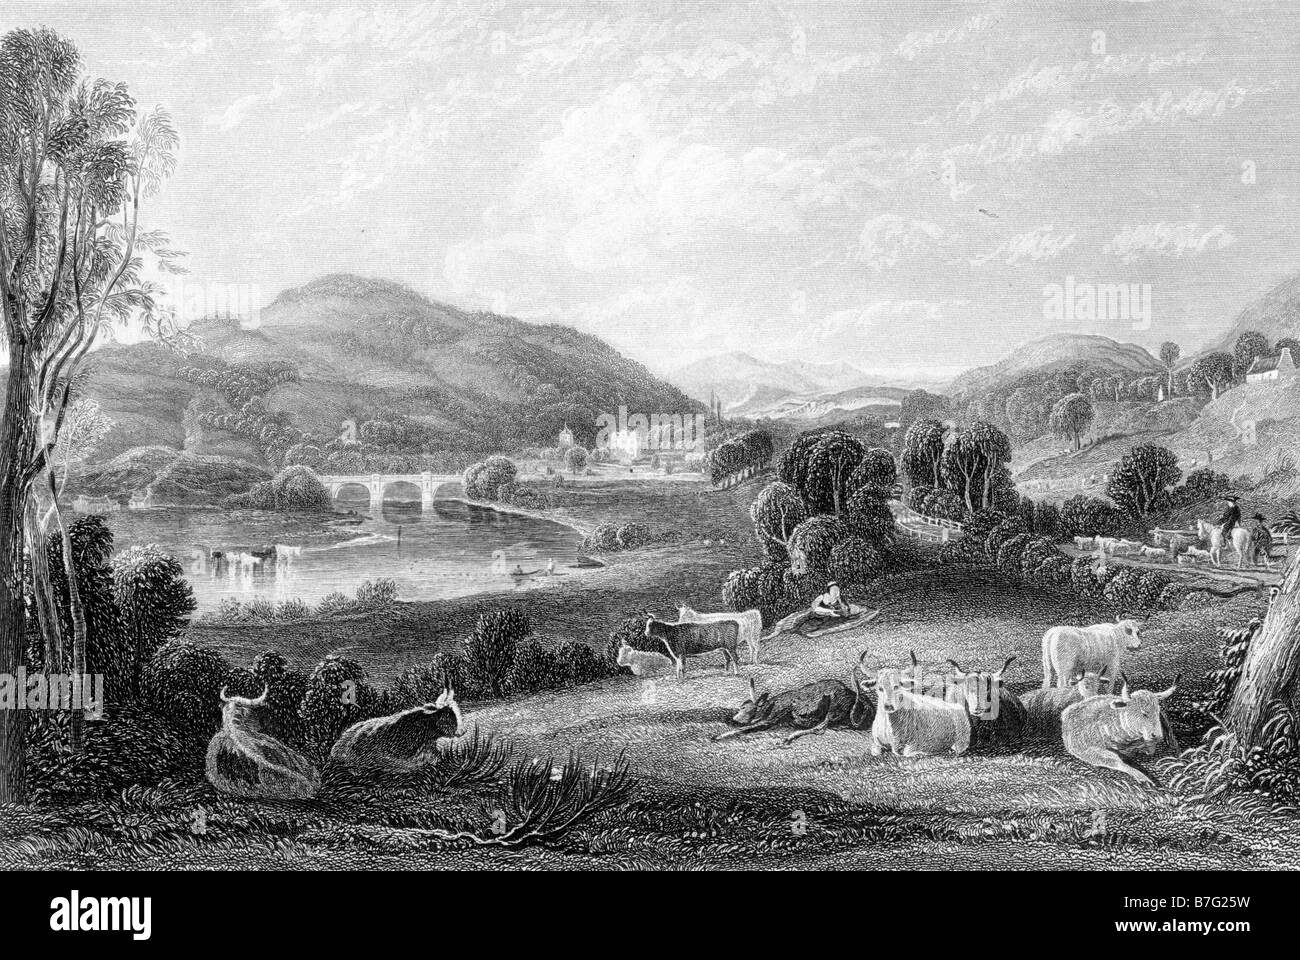 Scene on the River Nith Dumfrieshire Scotland Engraving by David Octavius Hill 1802 to 1870 19th Century Illustration - Stock Image